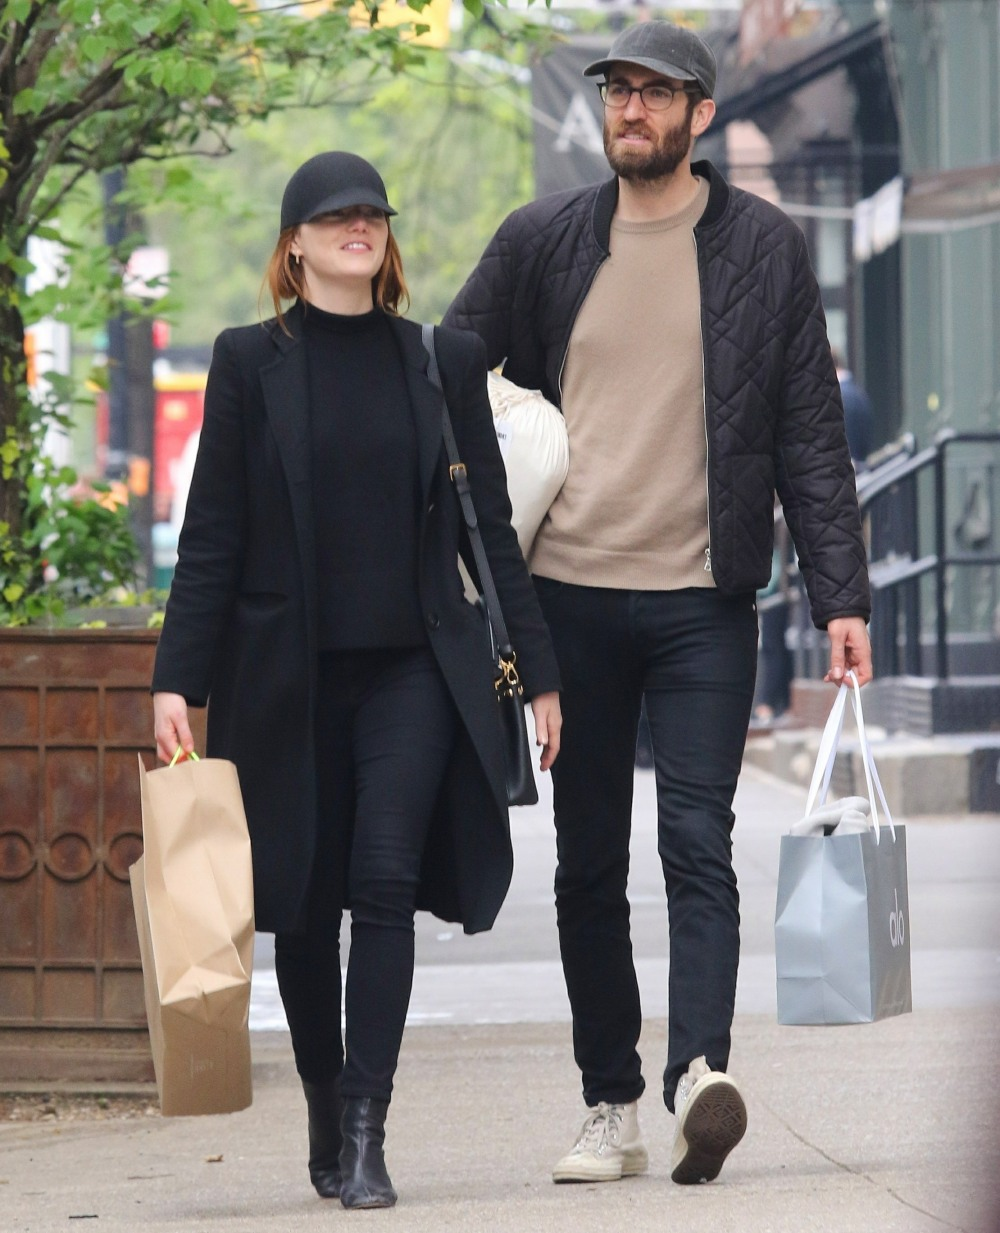 Emma Stone & Dave McCary are engaged after more than two years of dating